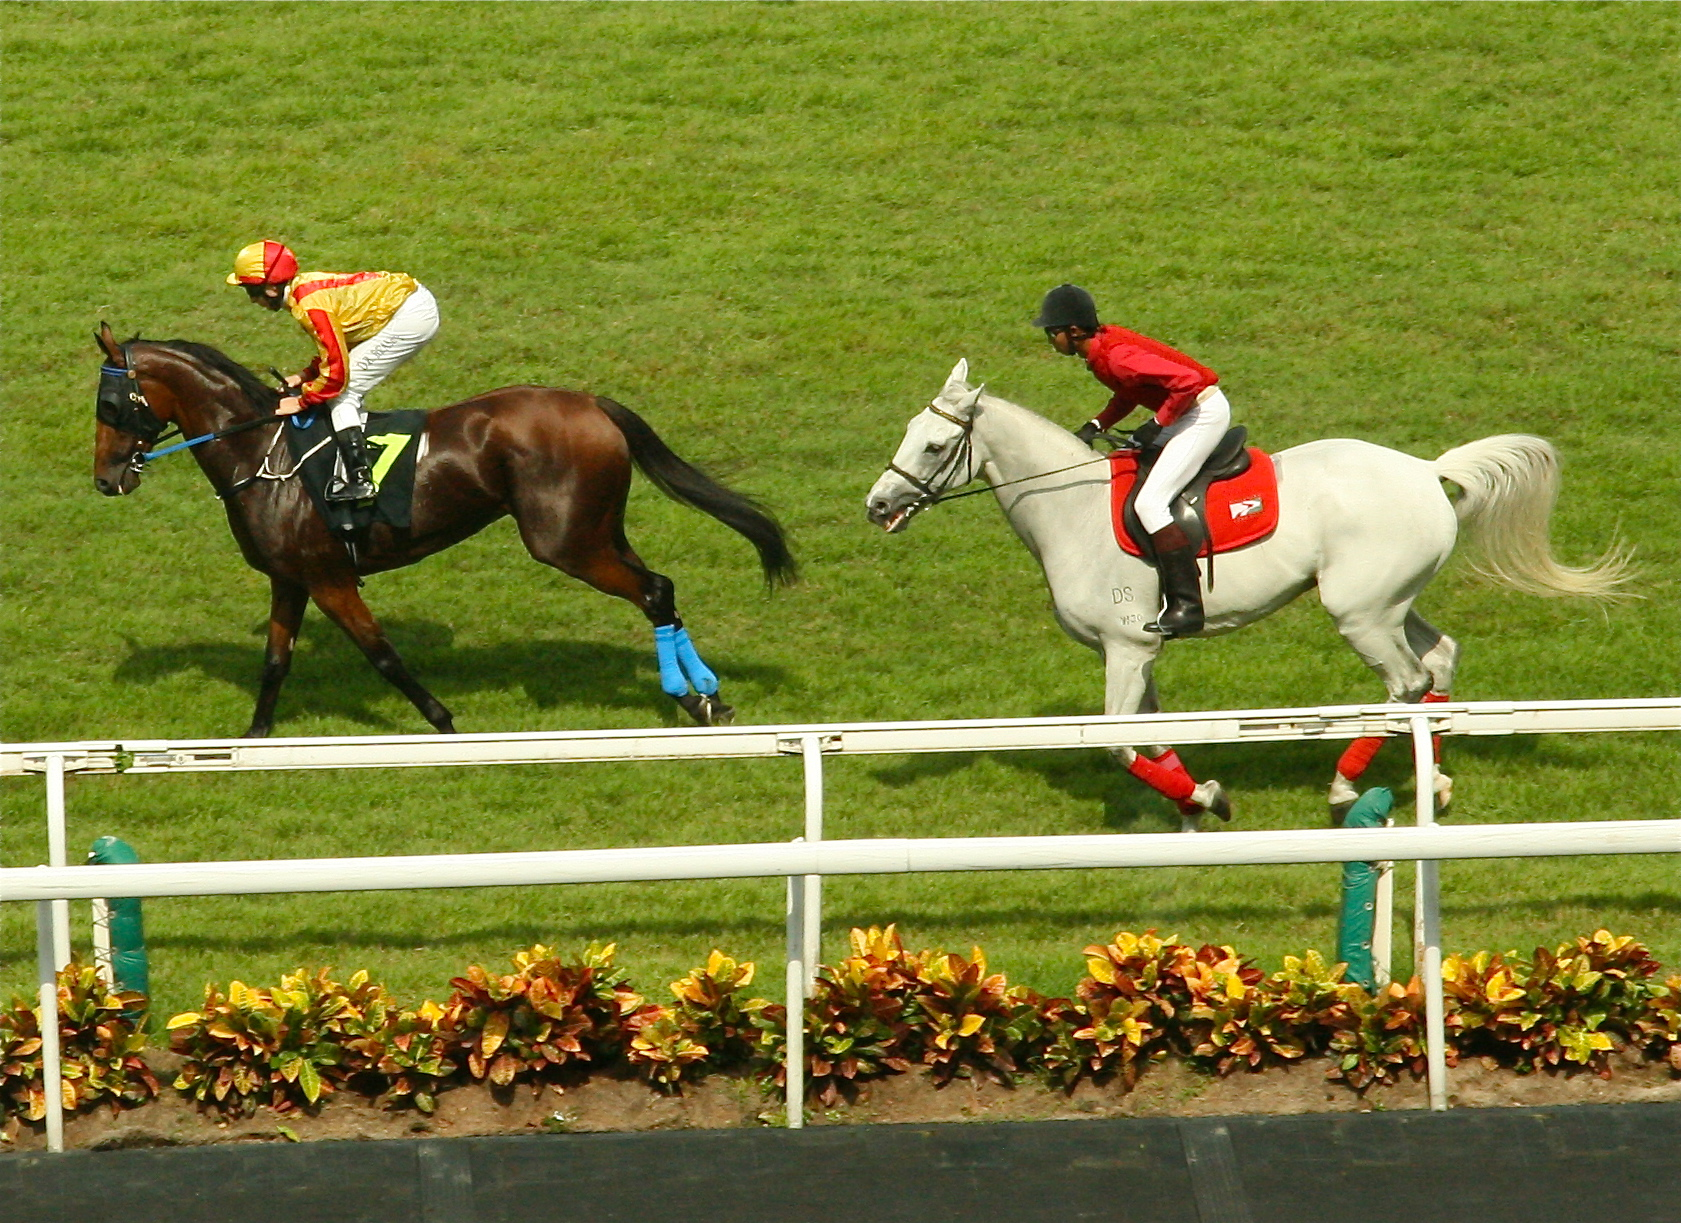 Fine Day of Horse Racing at the Singapore Turf Club